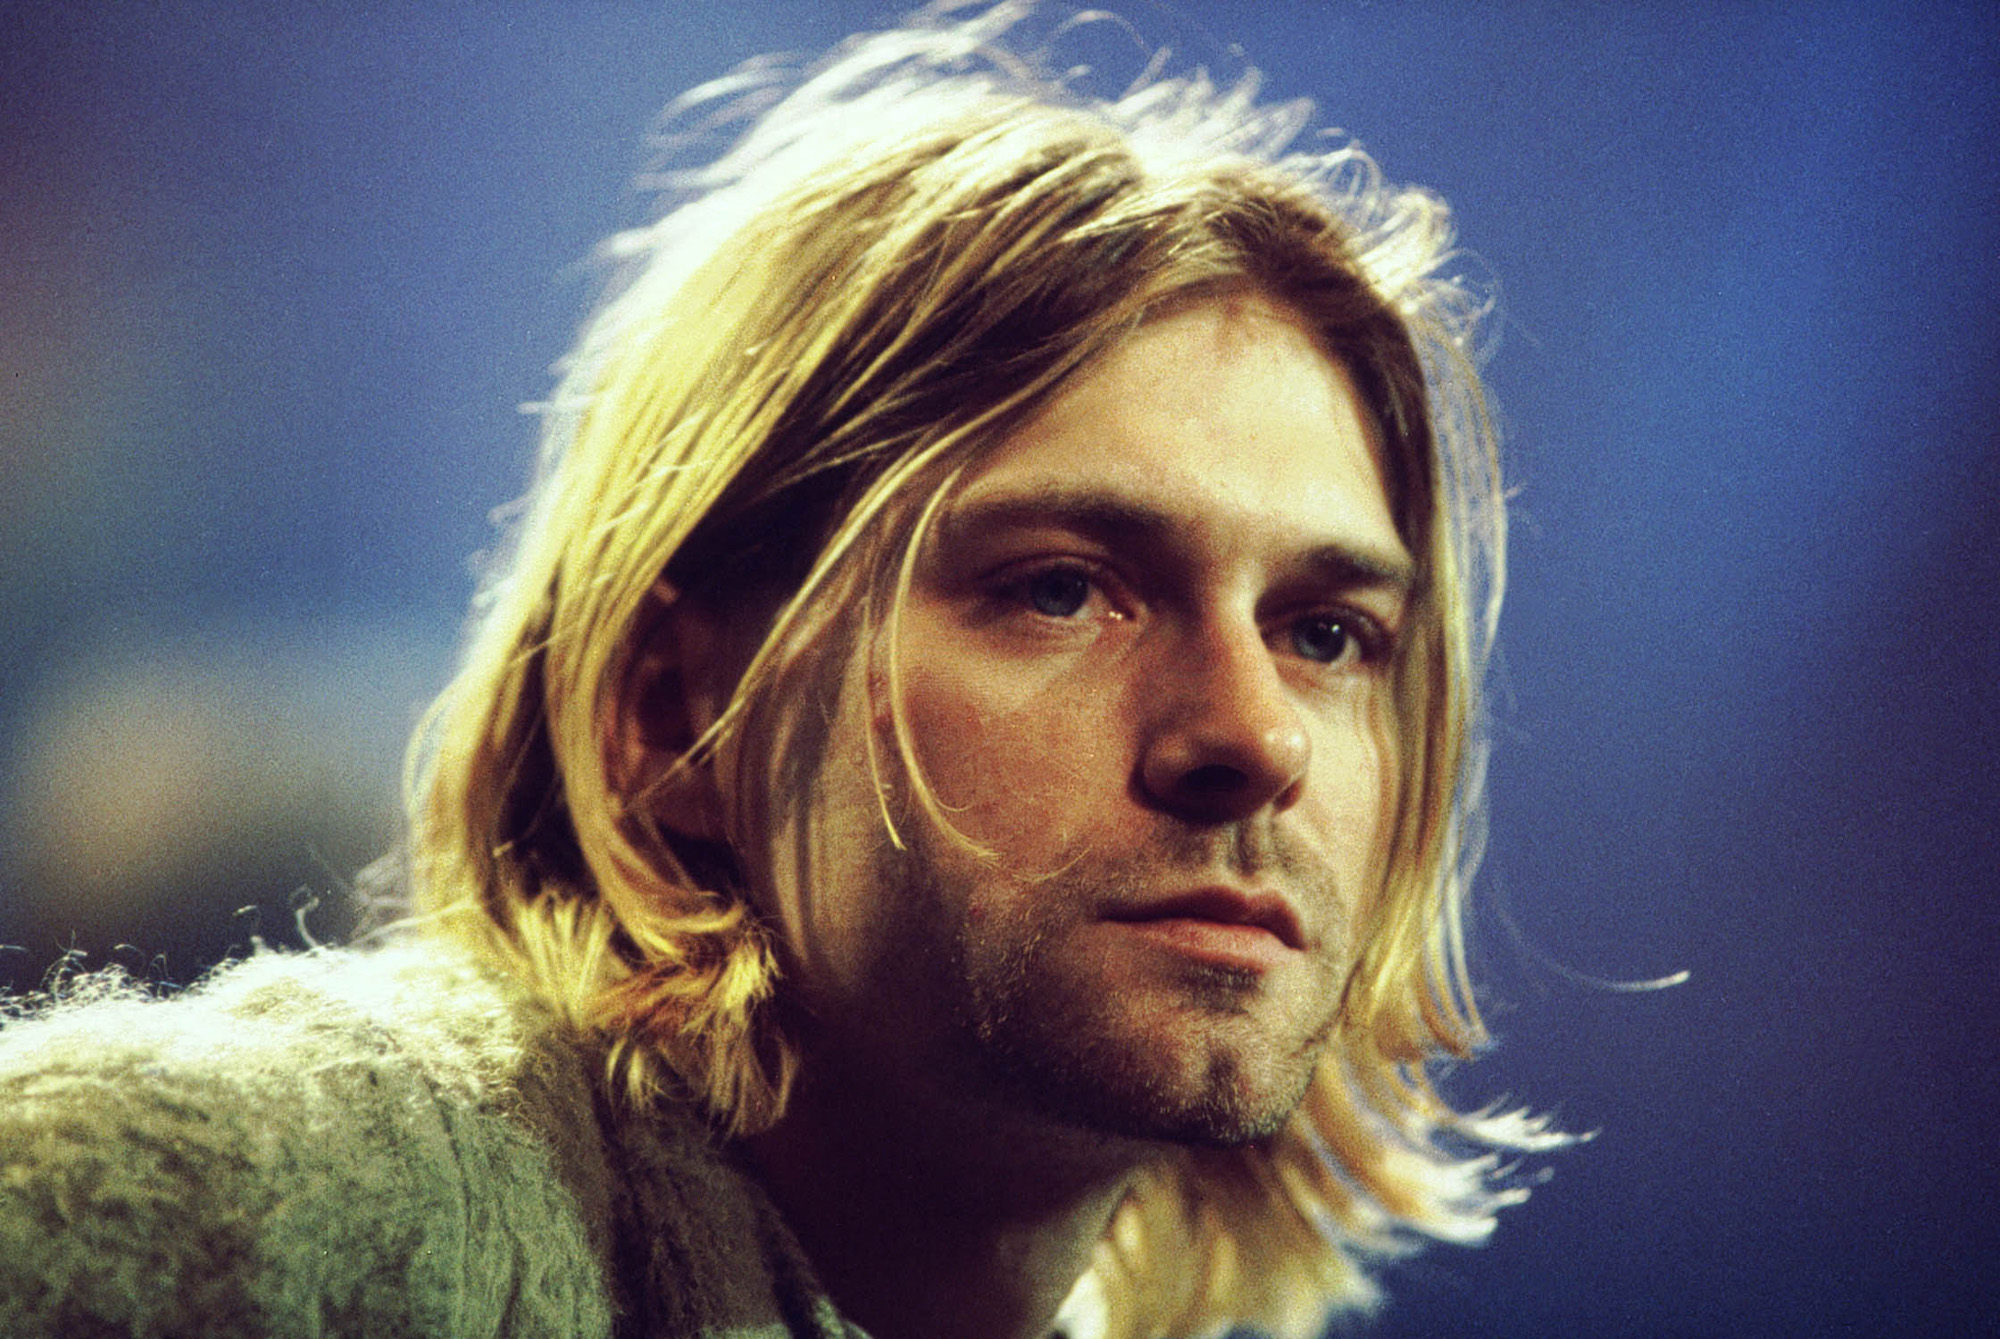 Unheard Kurt Cobain track to feature on 'Montage of Heck' soundtrack